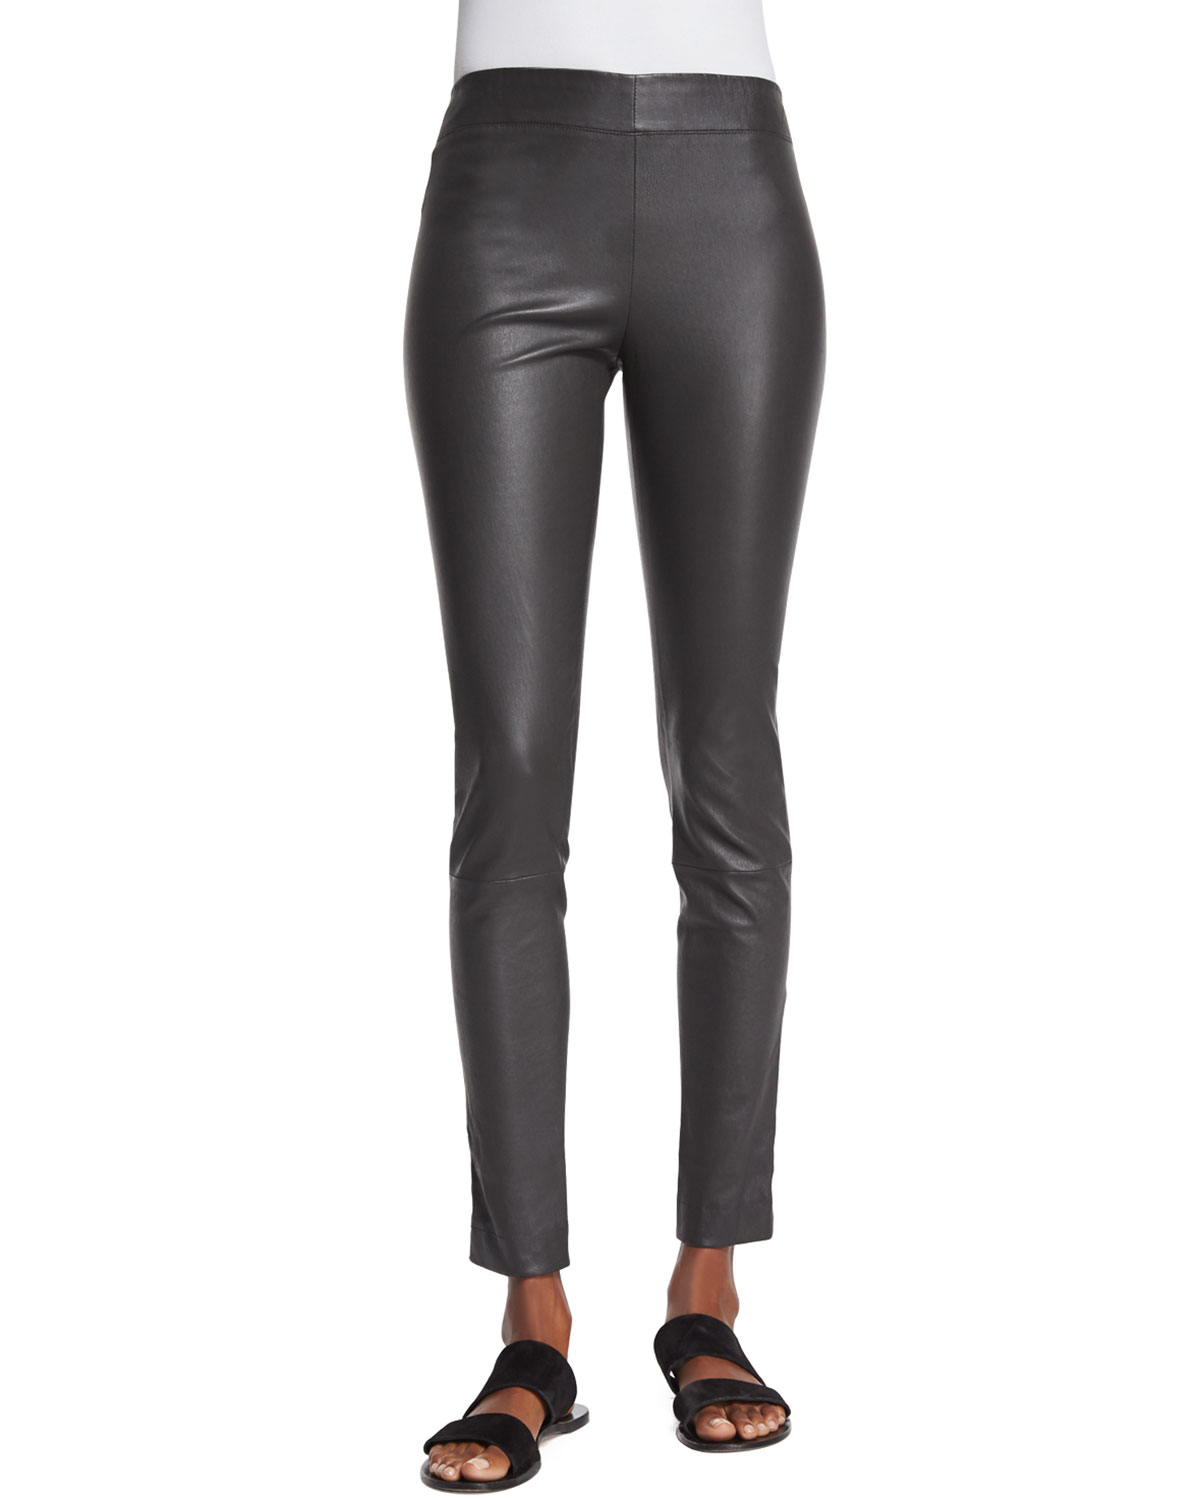 THE ROW Lenra Bonded Leather Leggings, Pewter